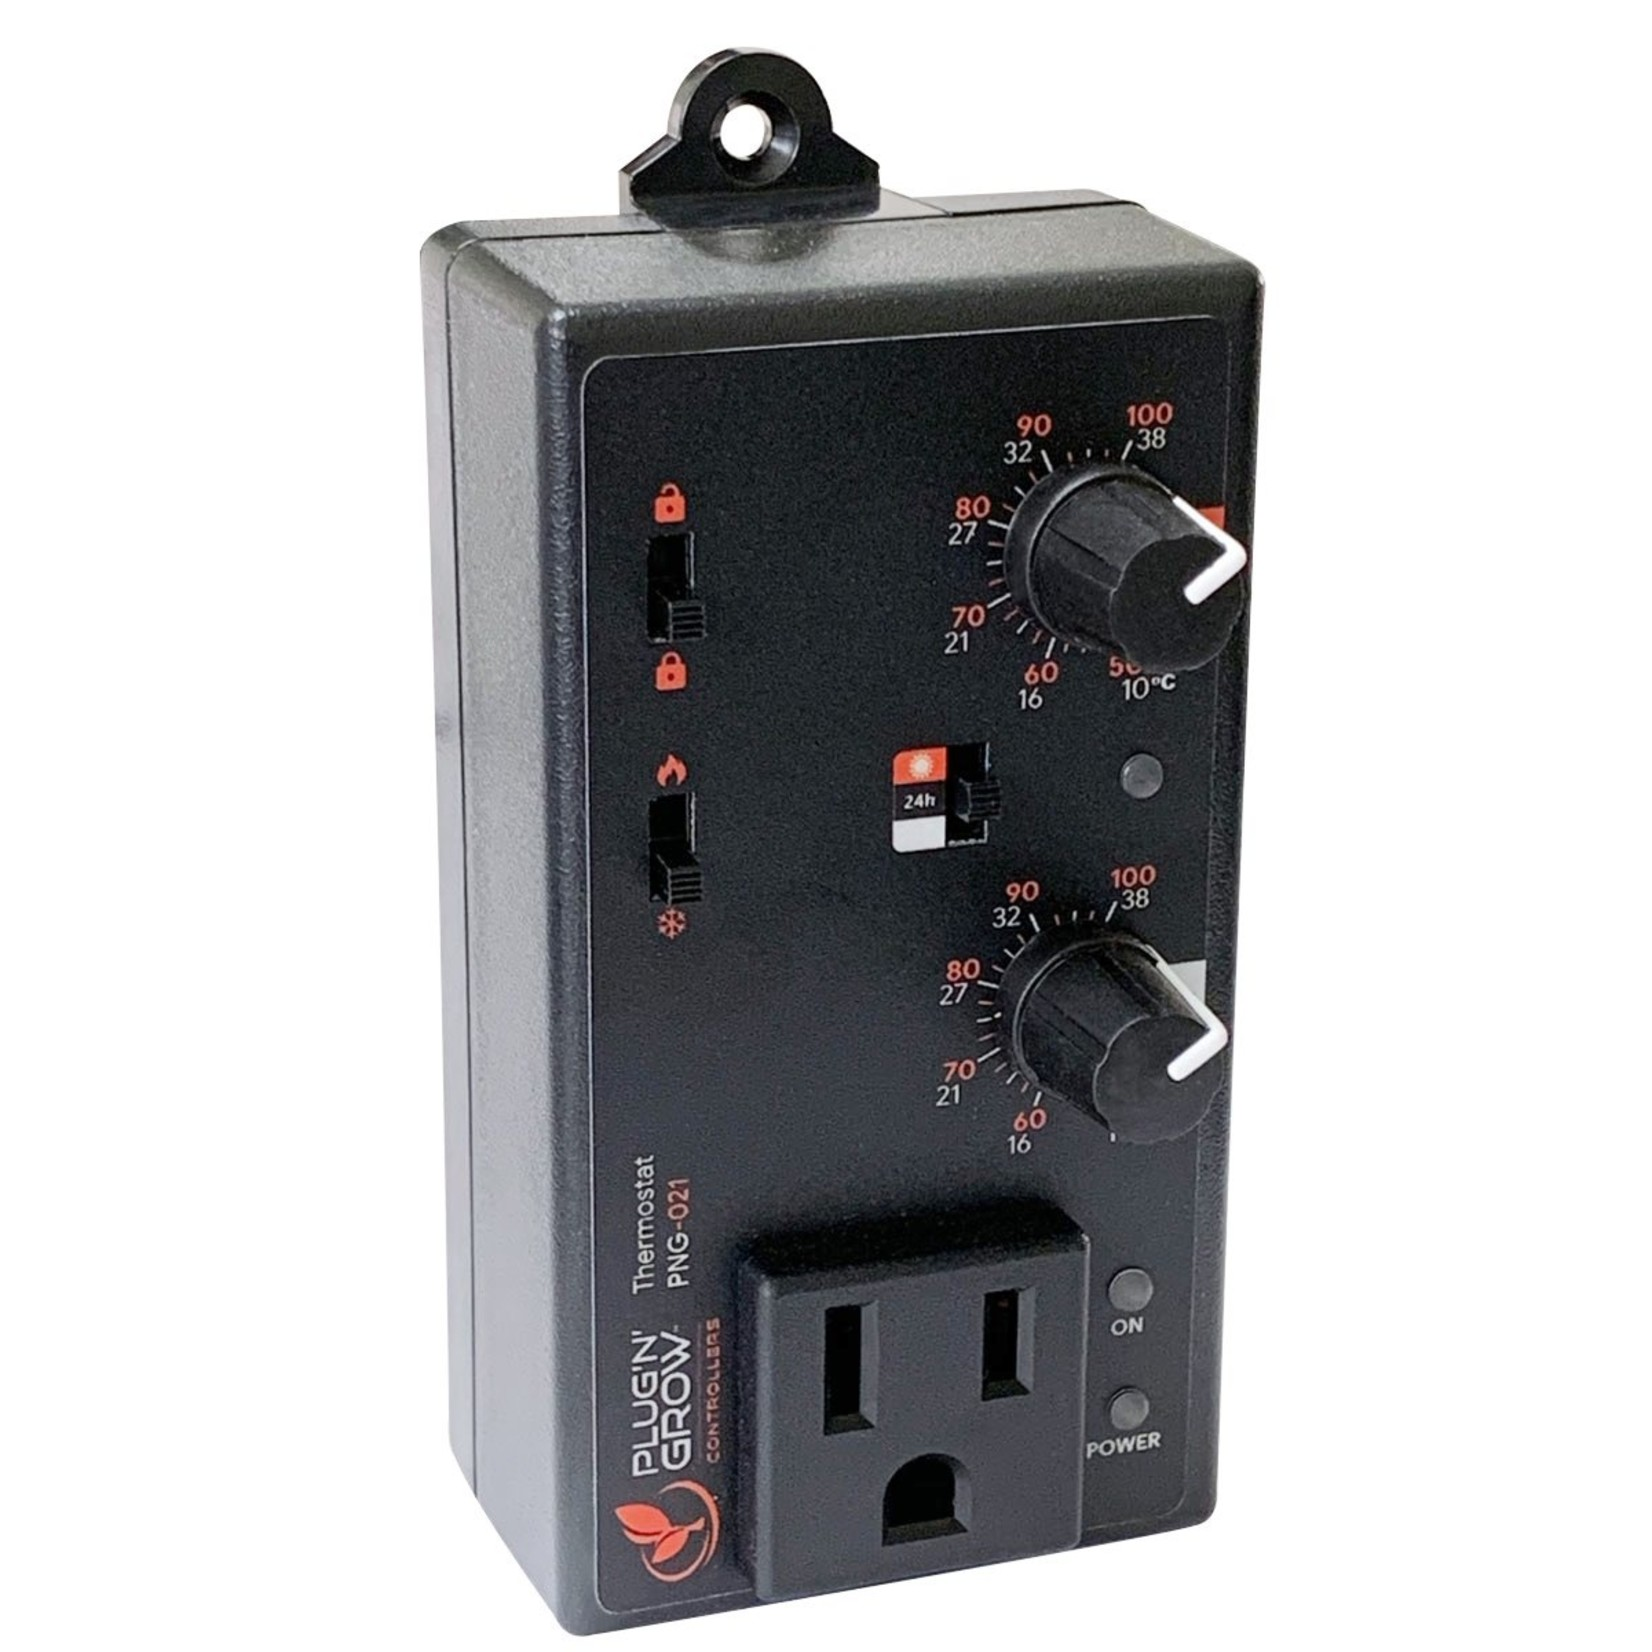 Plug n' Grow PNG IGS-021 Day / Night Temperature Controller